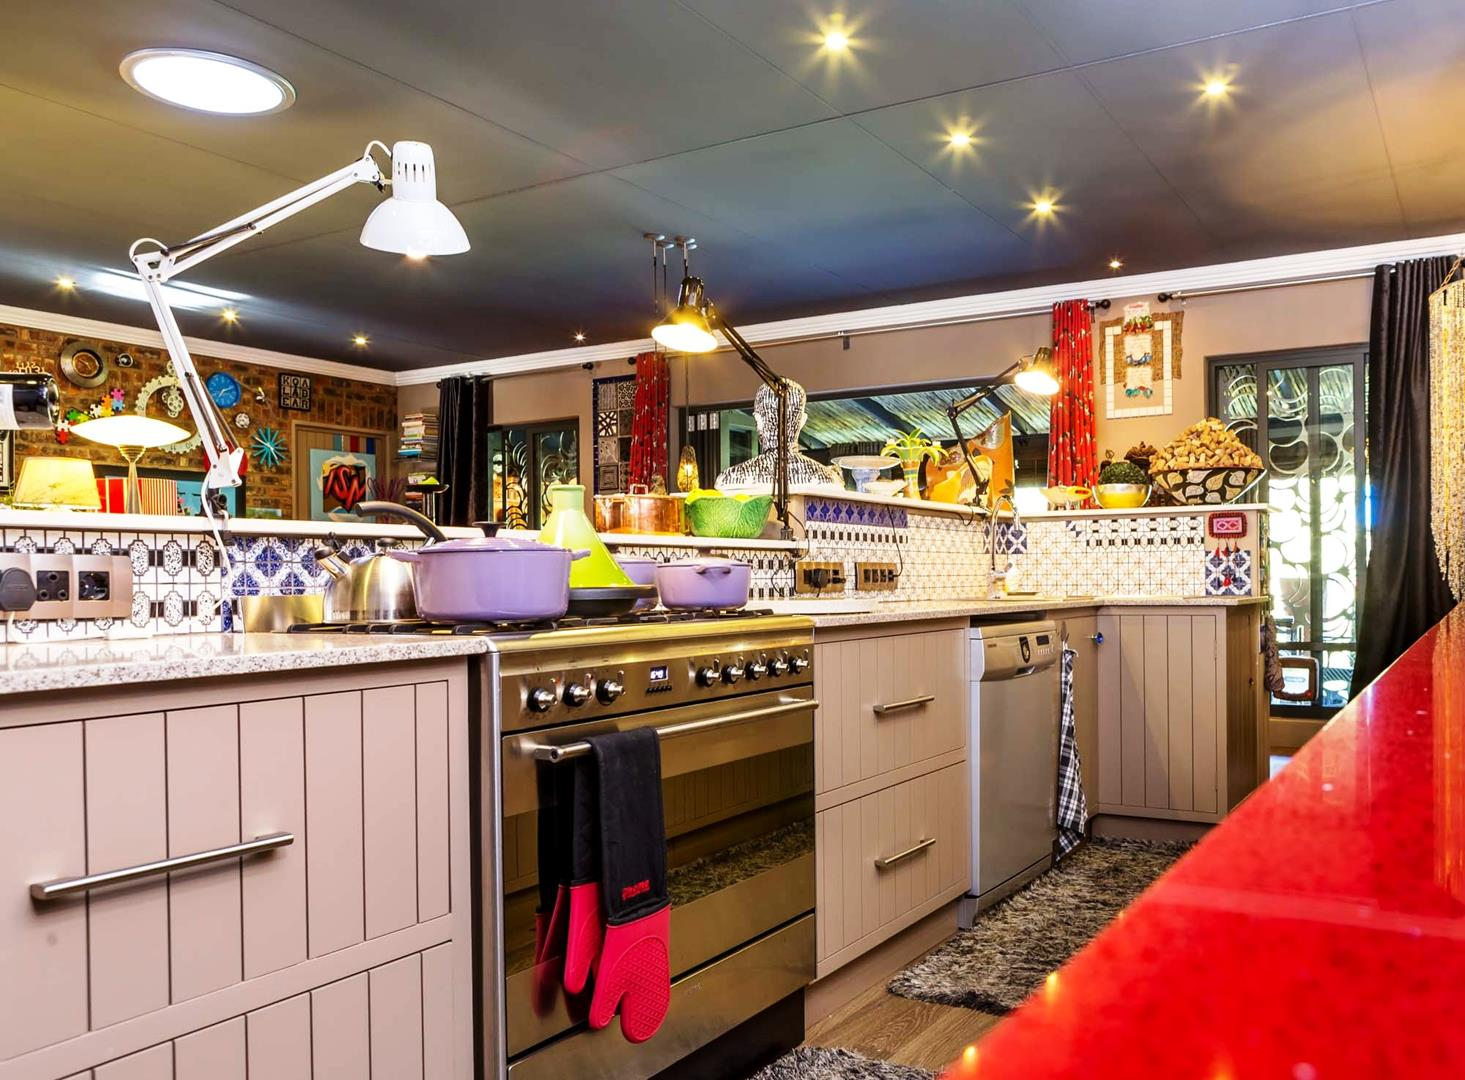 Inside the galley kitchen